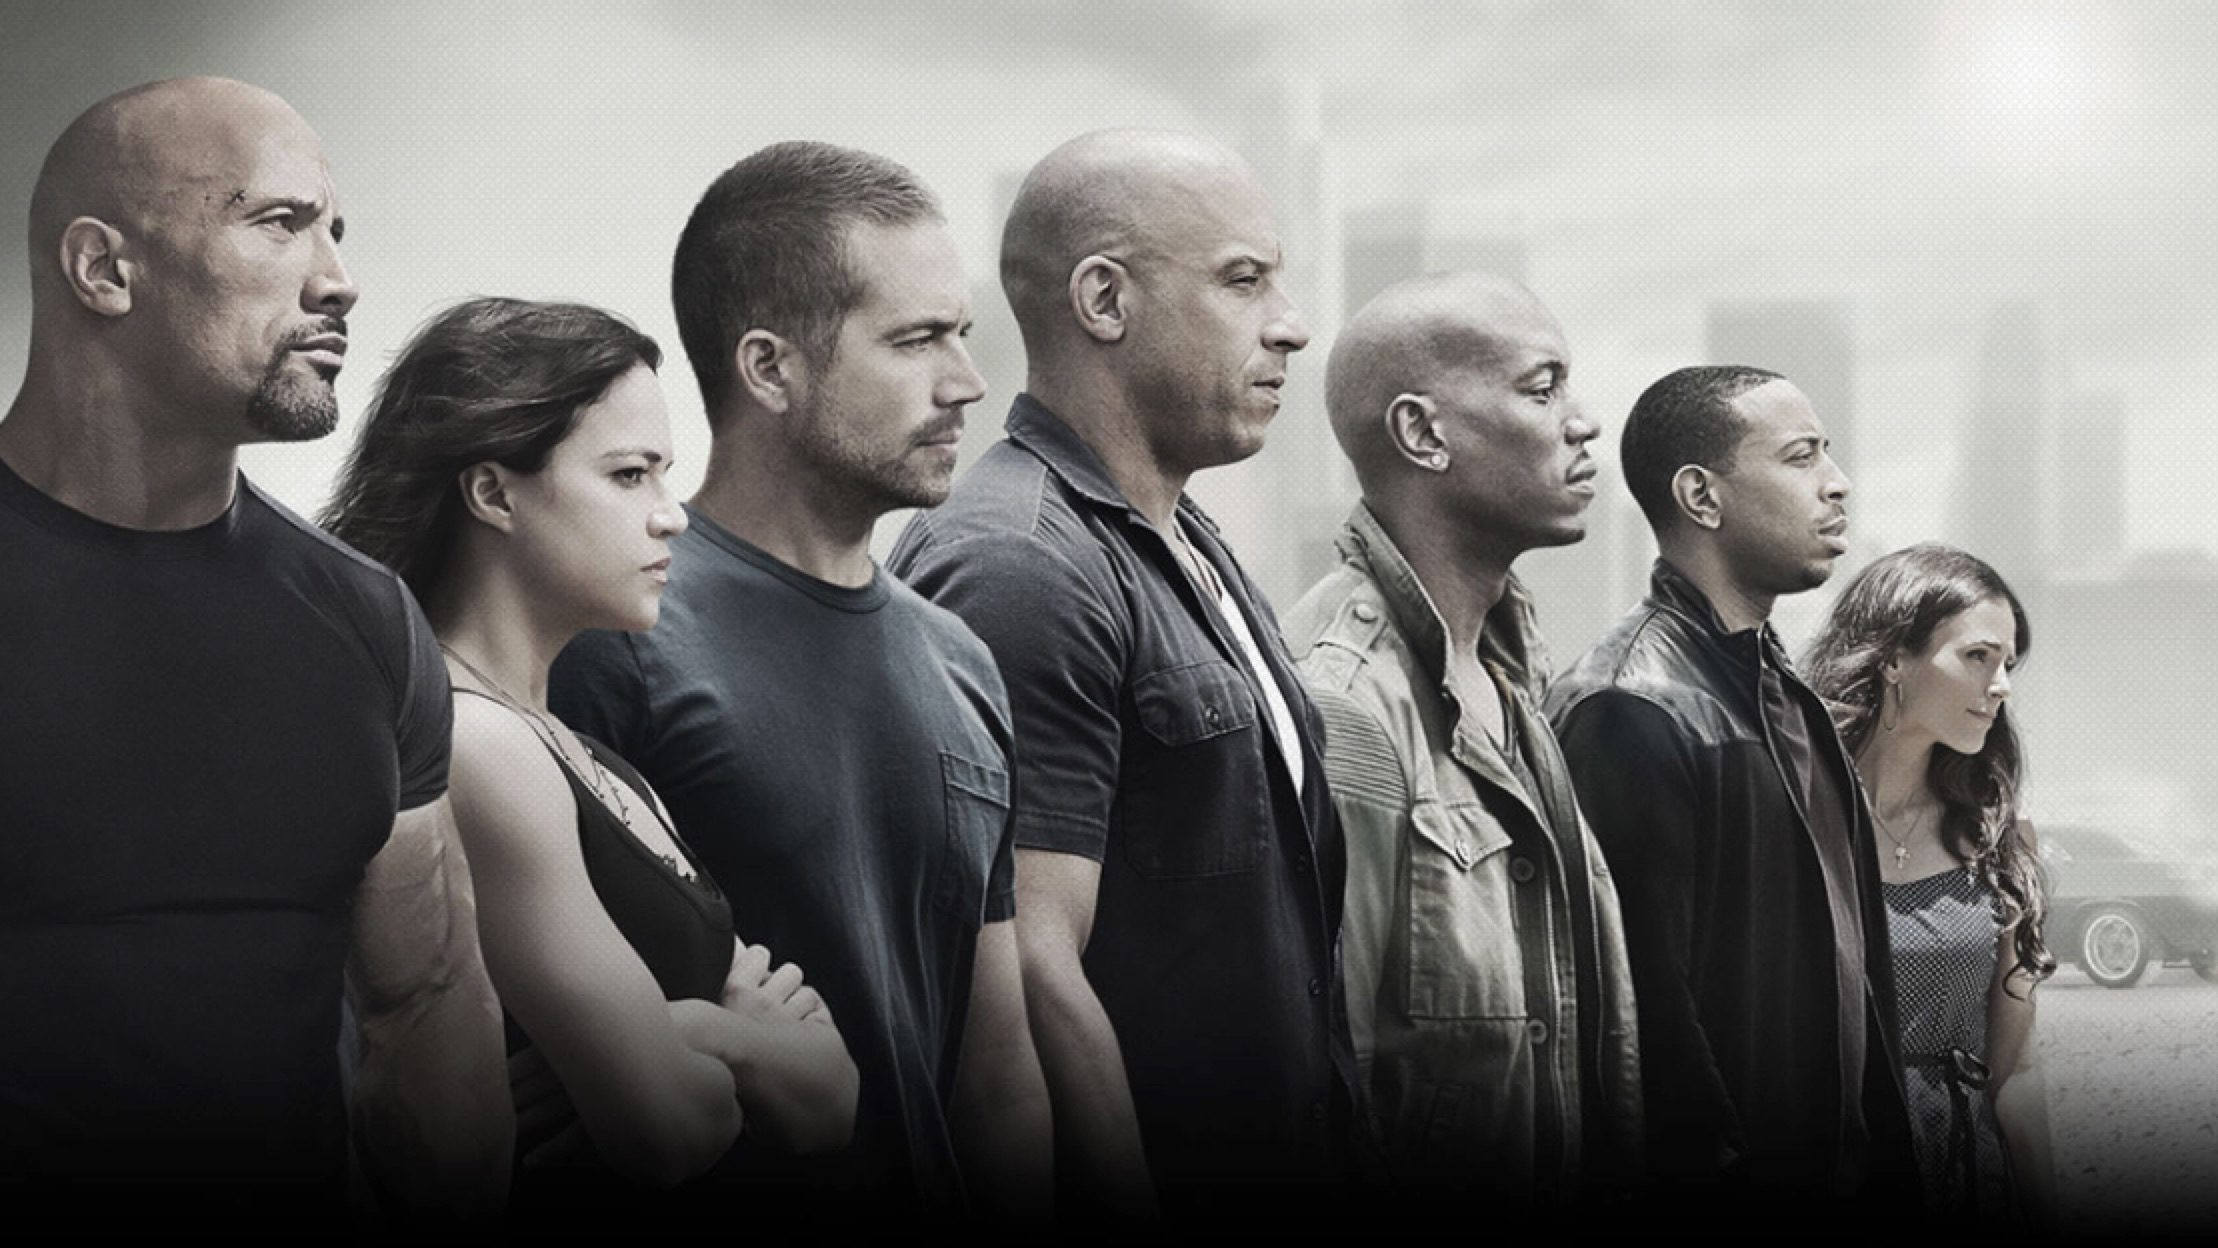 Fast and Furious 9 Hobbs & Shaw release date